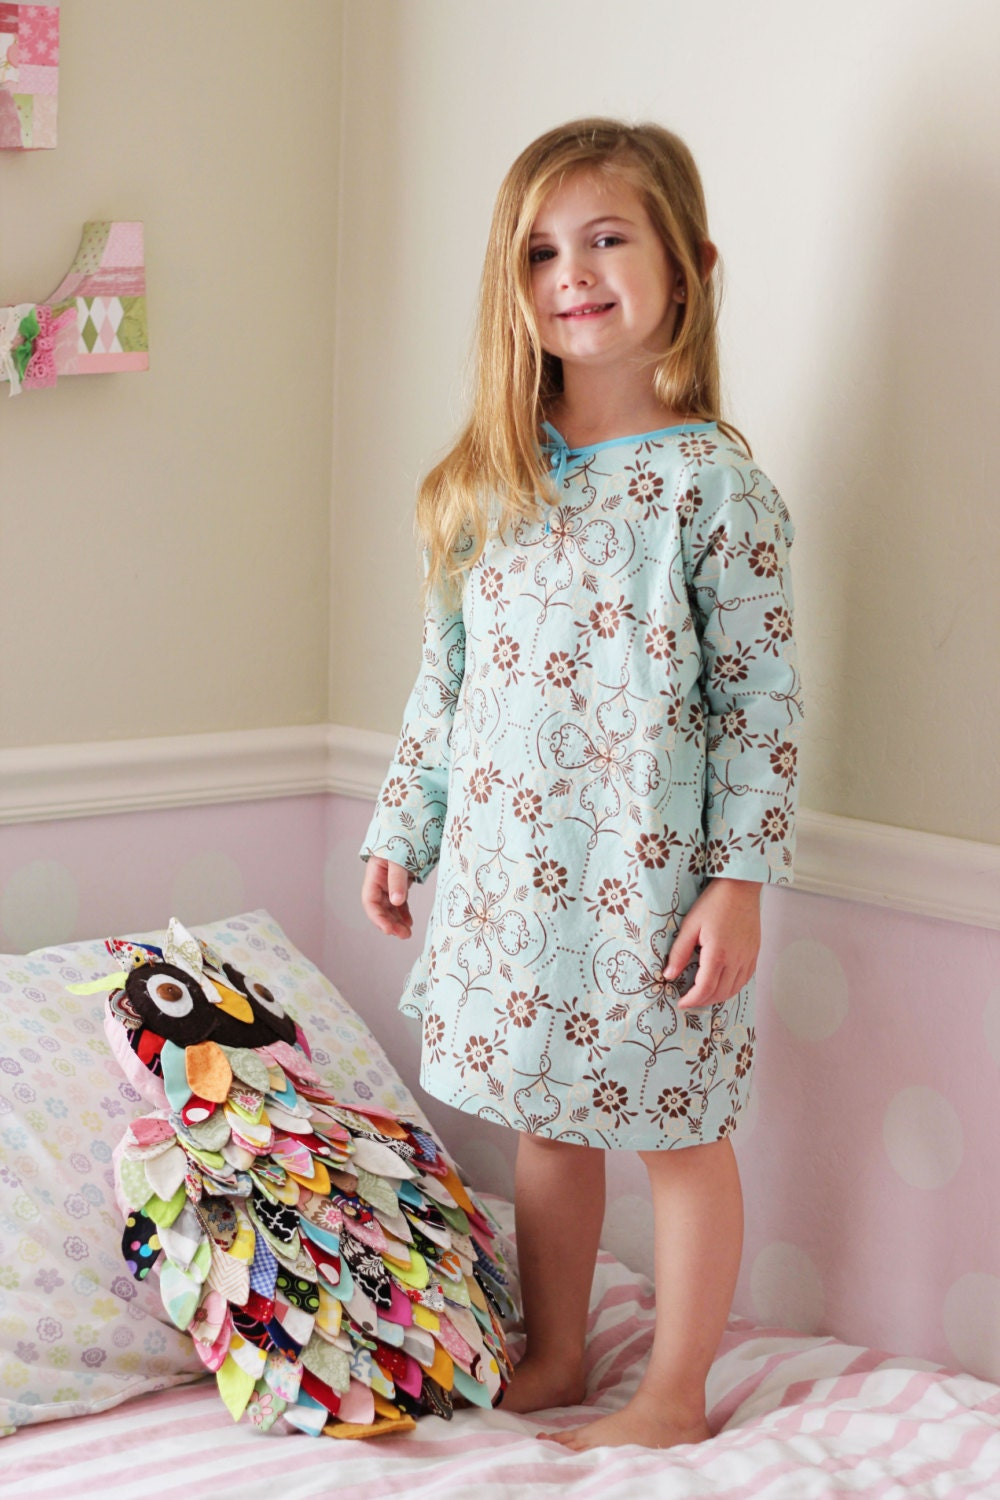 Shop a variety of fun and colorful nightgowns for girls at up to 70% off on zulily. Browse girls' nightgowns with licensed characters, creative patterns and more.